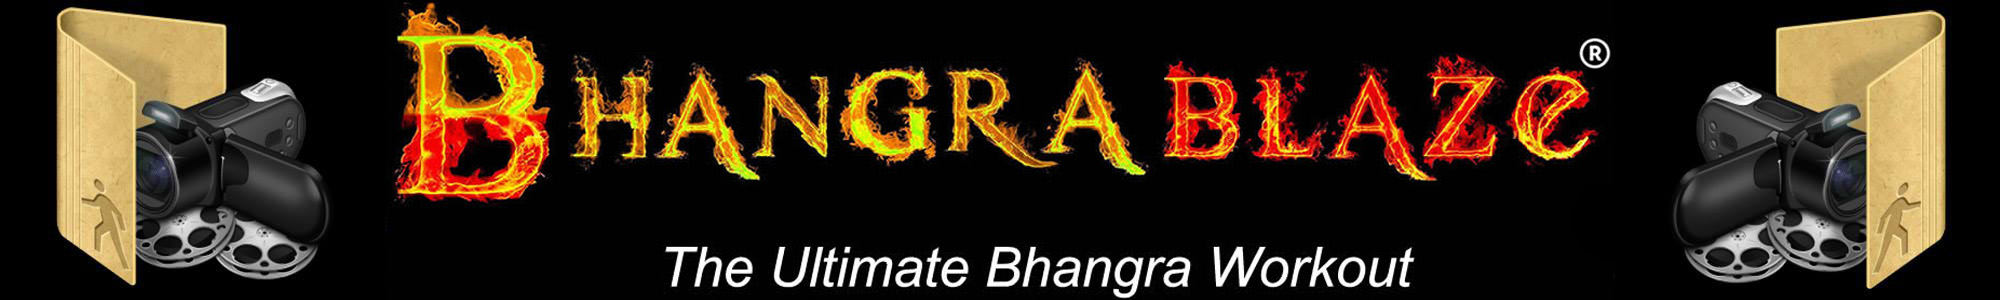 BhangraBlaze Videos